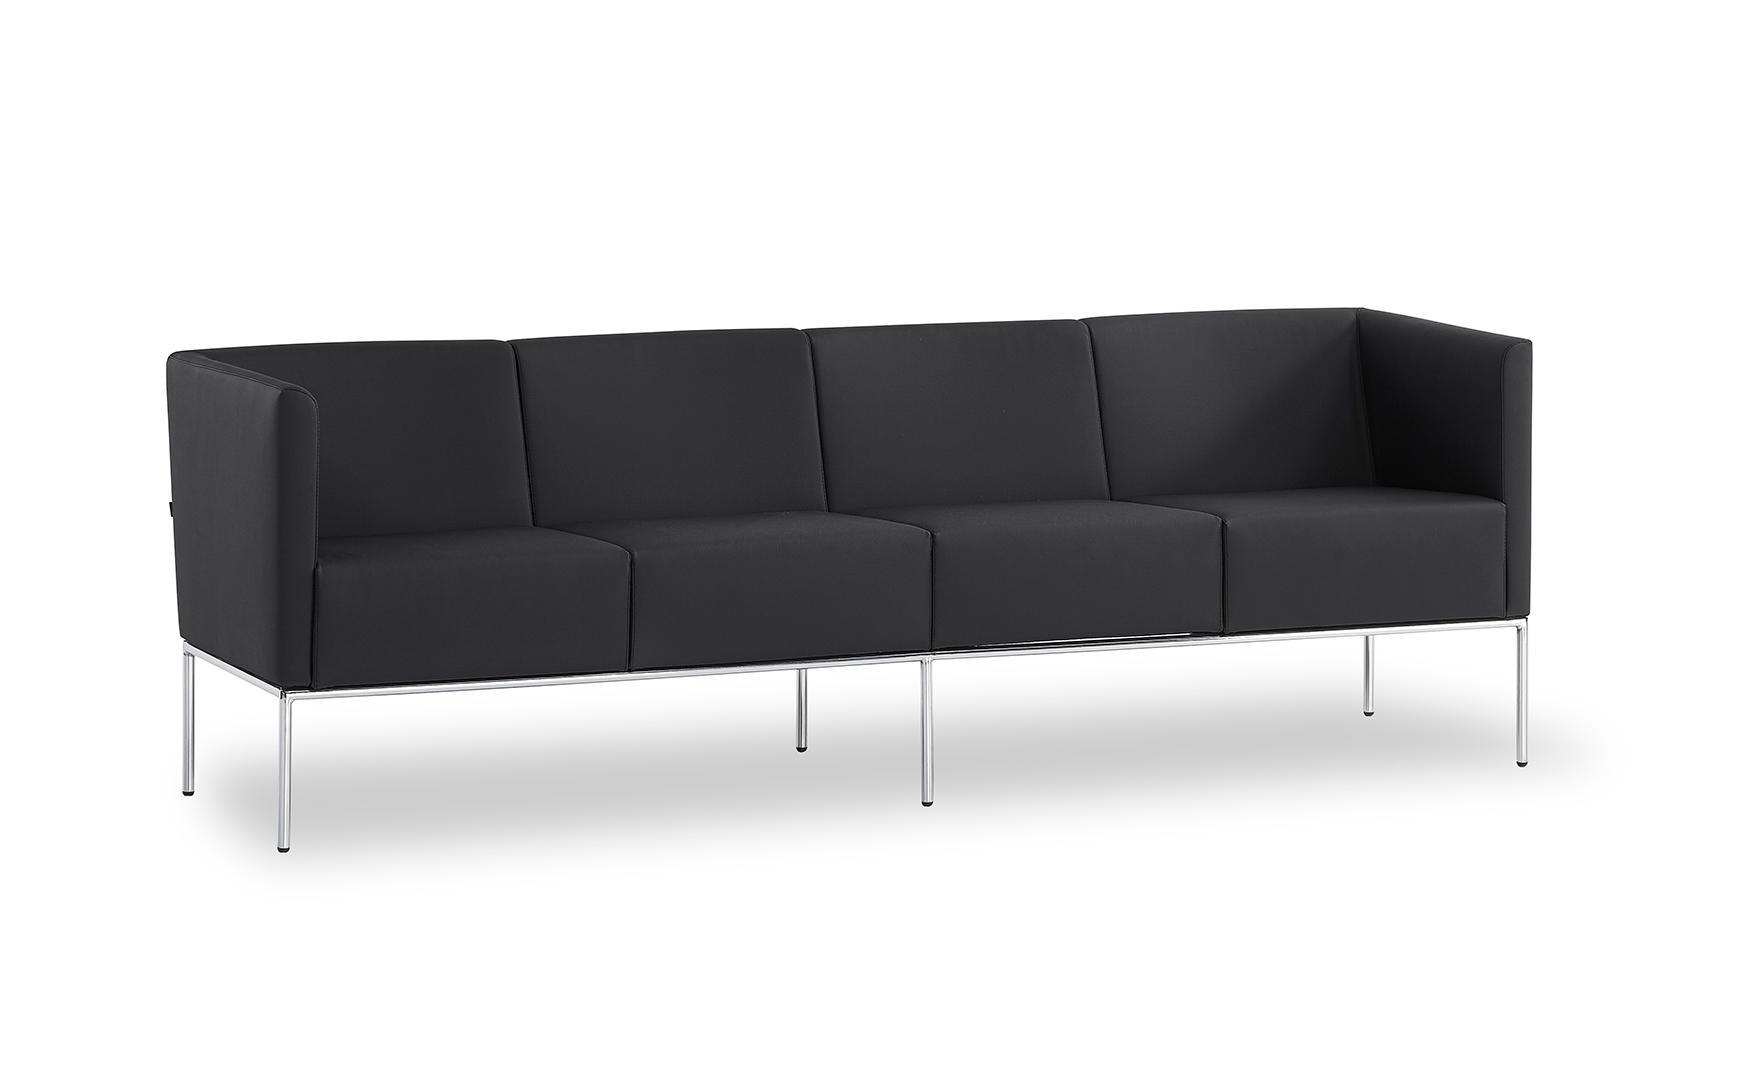 B&t Design | Products | Sofas | Tiny For Tiny Sofas (Image 2 of 20)